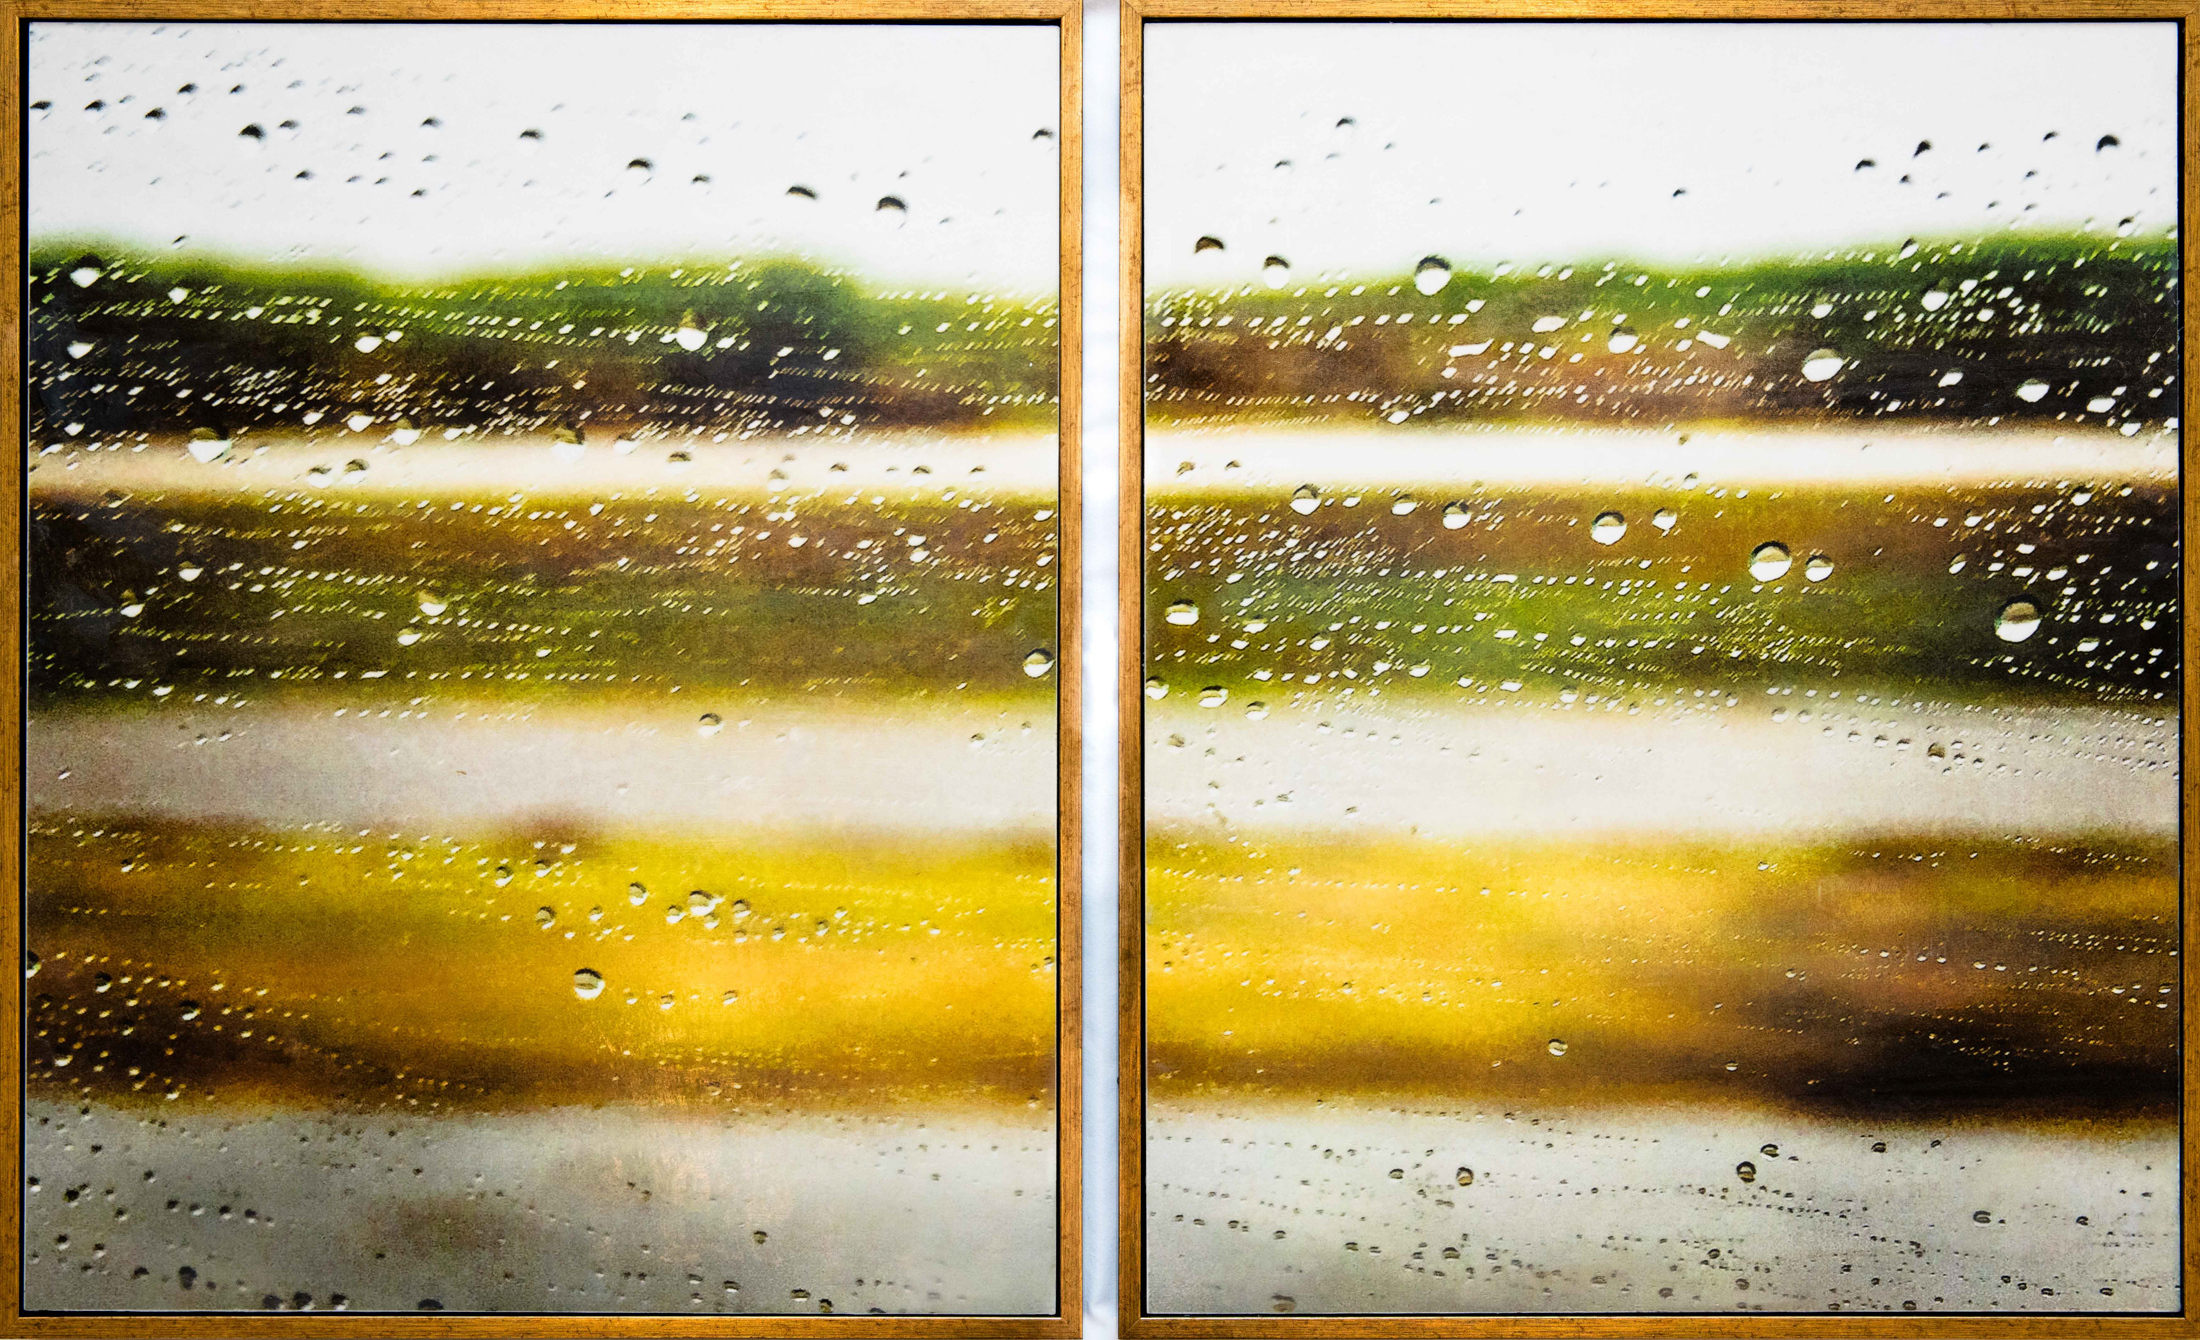 """Acadian Reverie, 2017, 22"""" x 36"""" diptych, pigment print (K3 ink) on kozo paper, layered on board with encaustic medium, oils."""